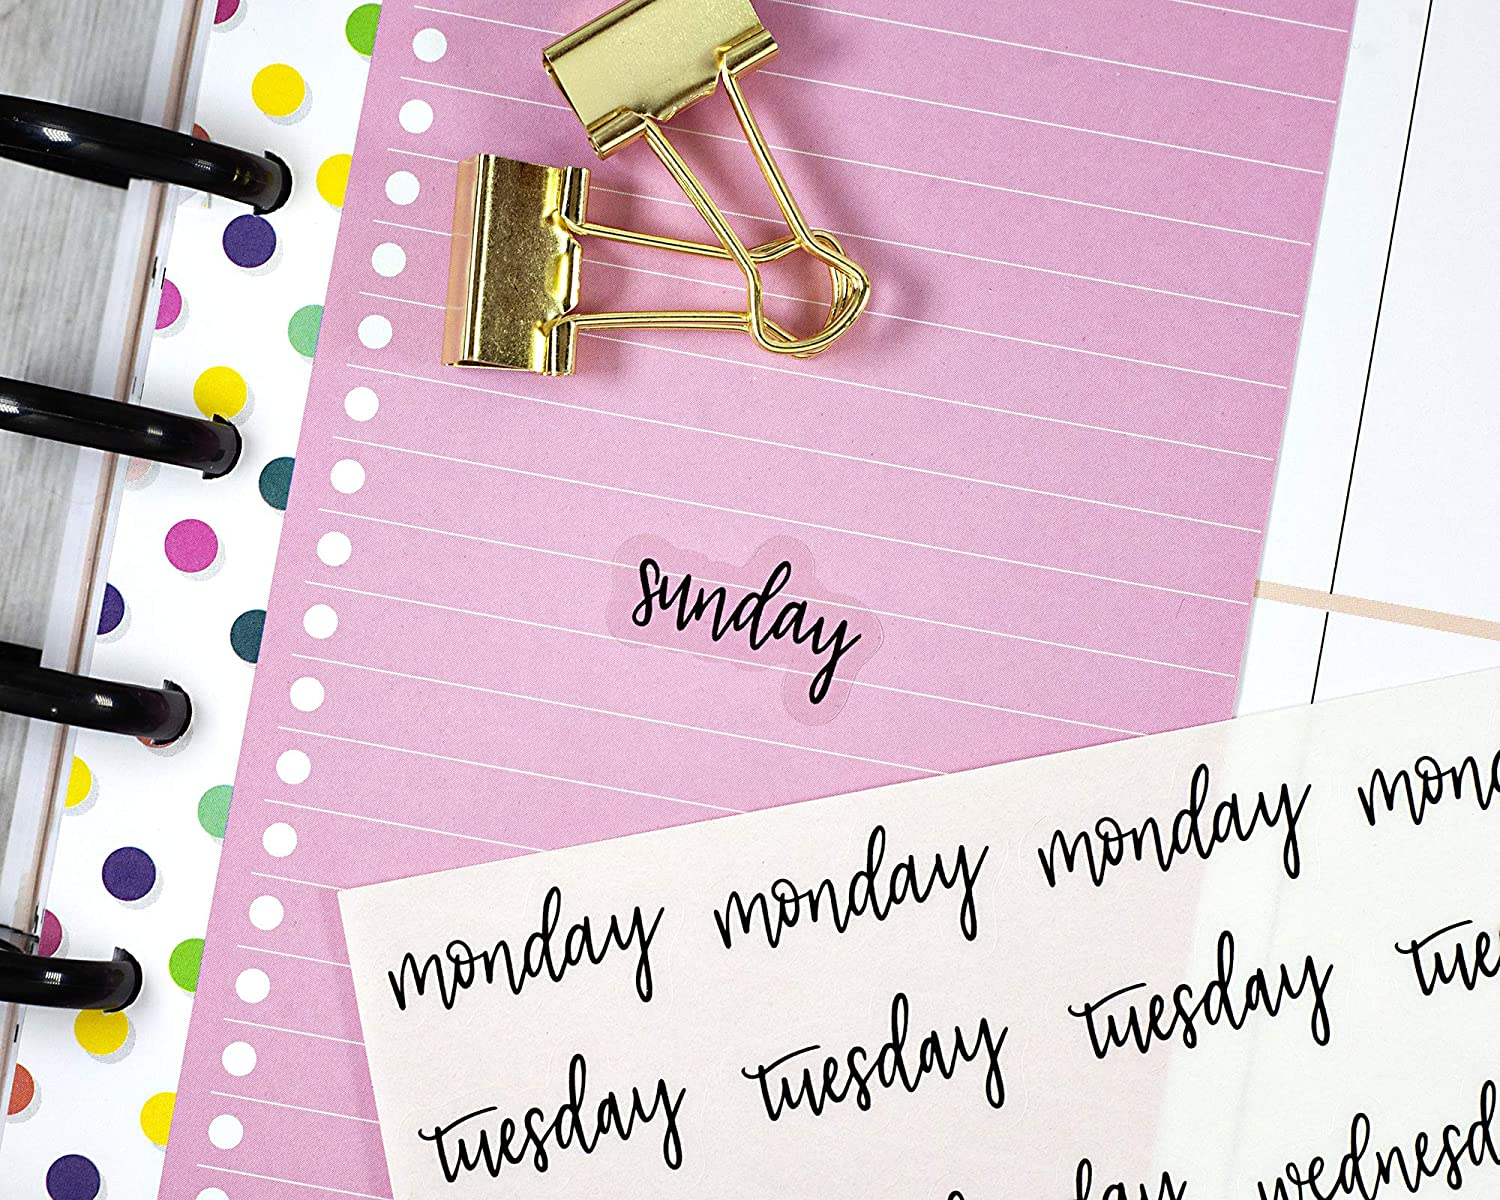 CLEAR Day of the Week Header Planner Stickers, ECLP Planner Stickers, Black on Clear Weekday Stickers, F7 (#904-012-001-C)